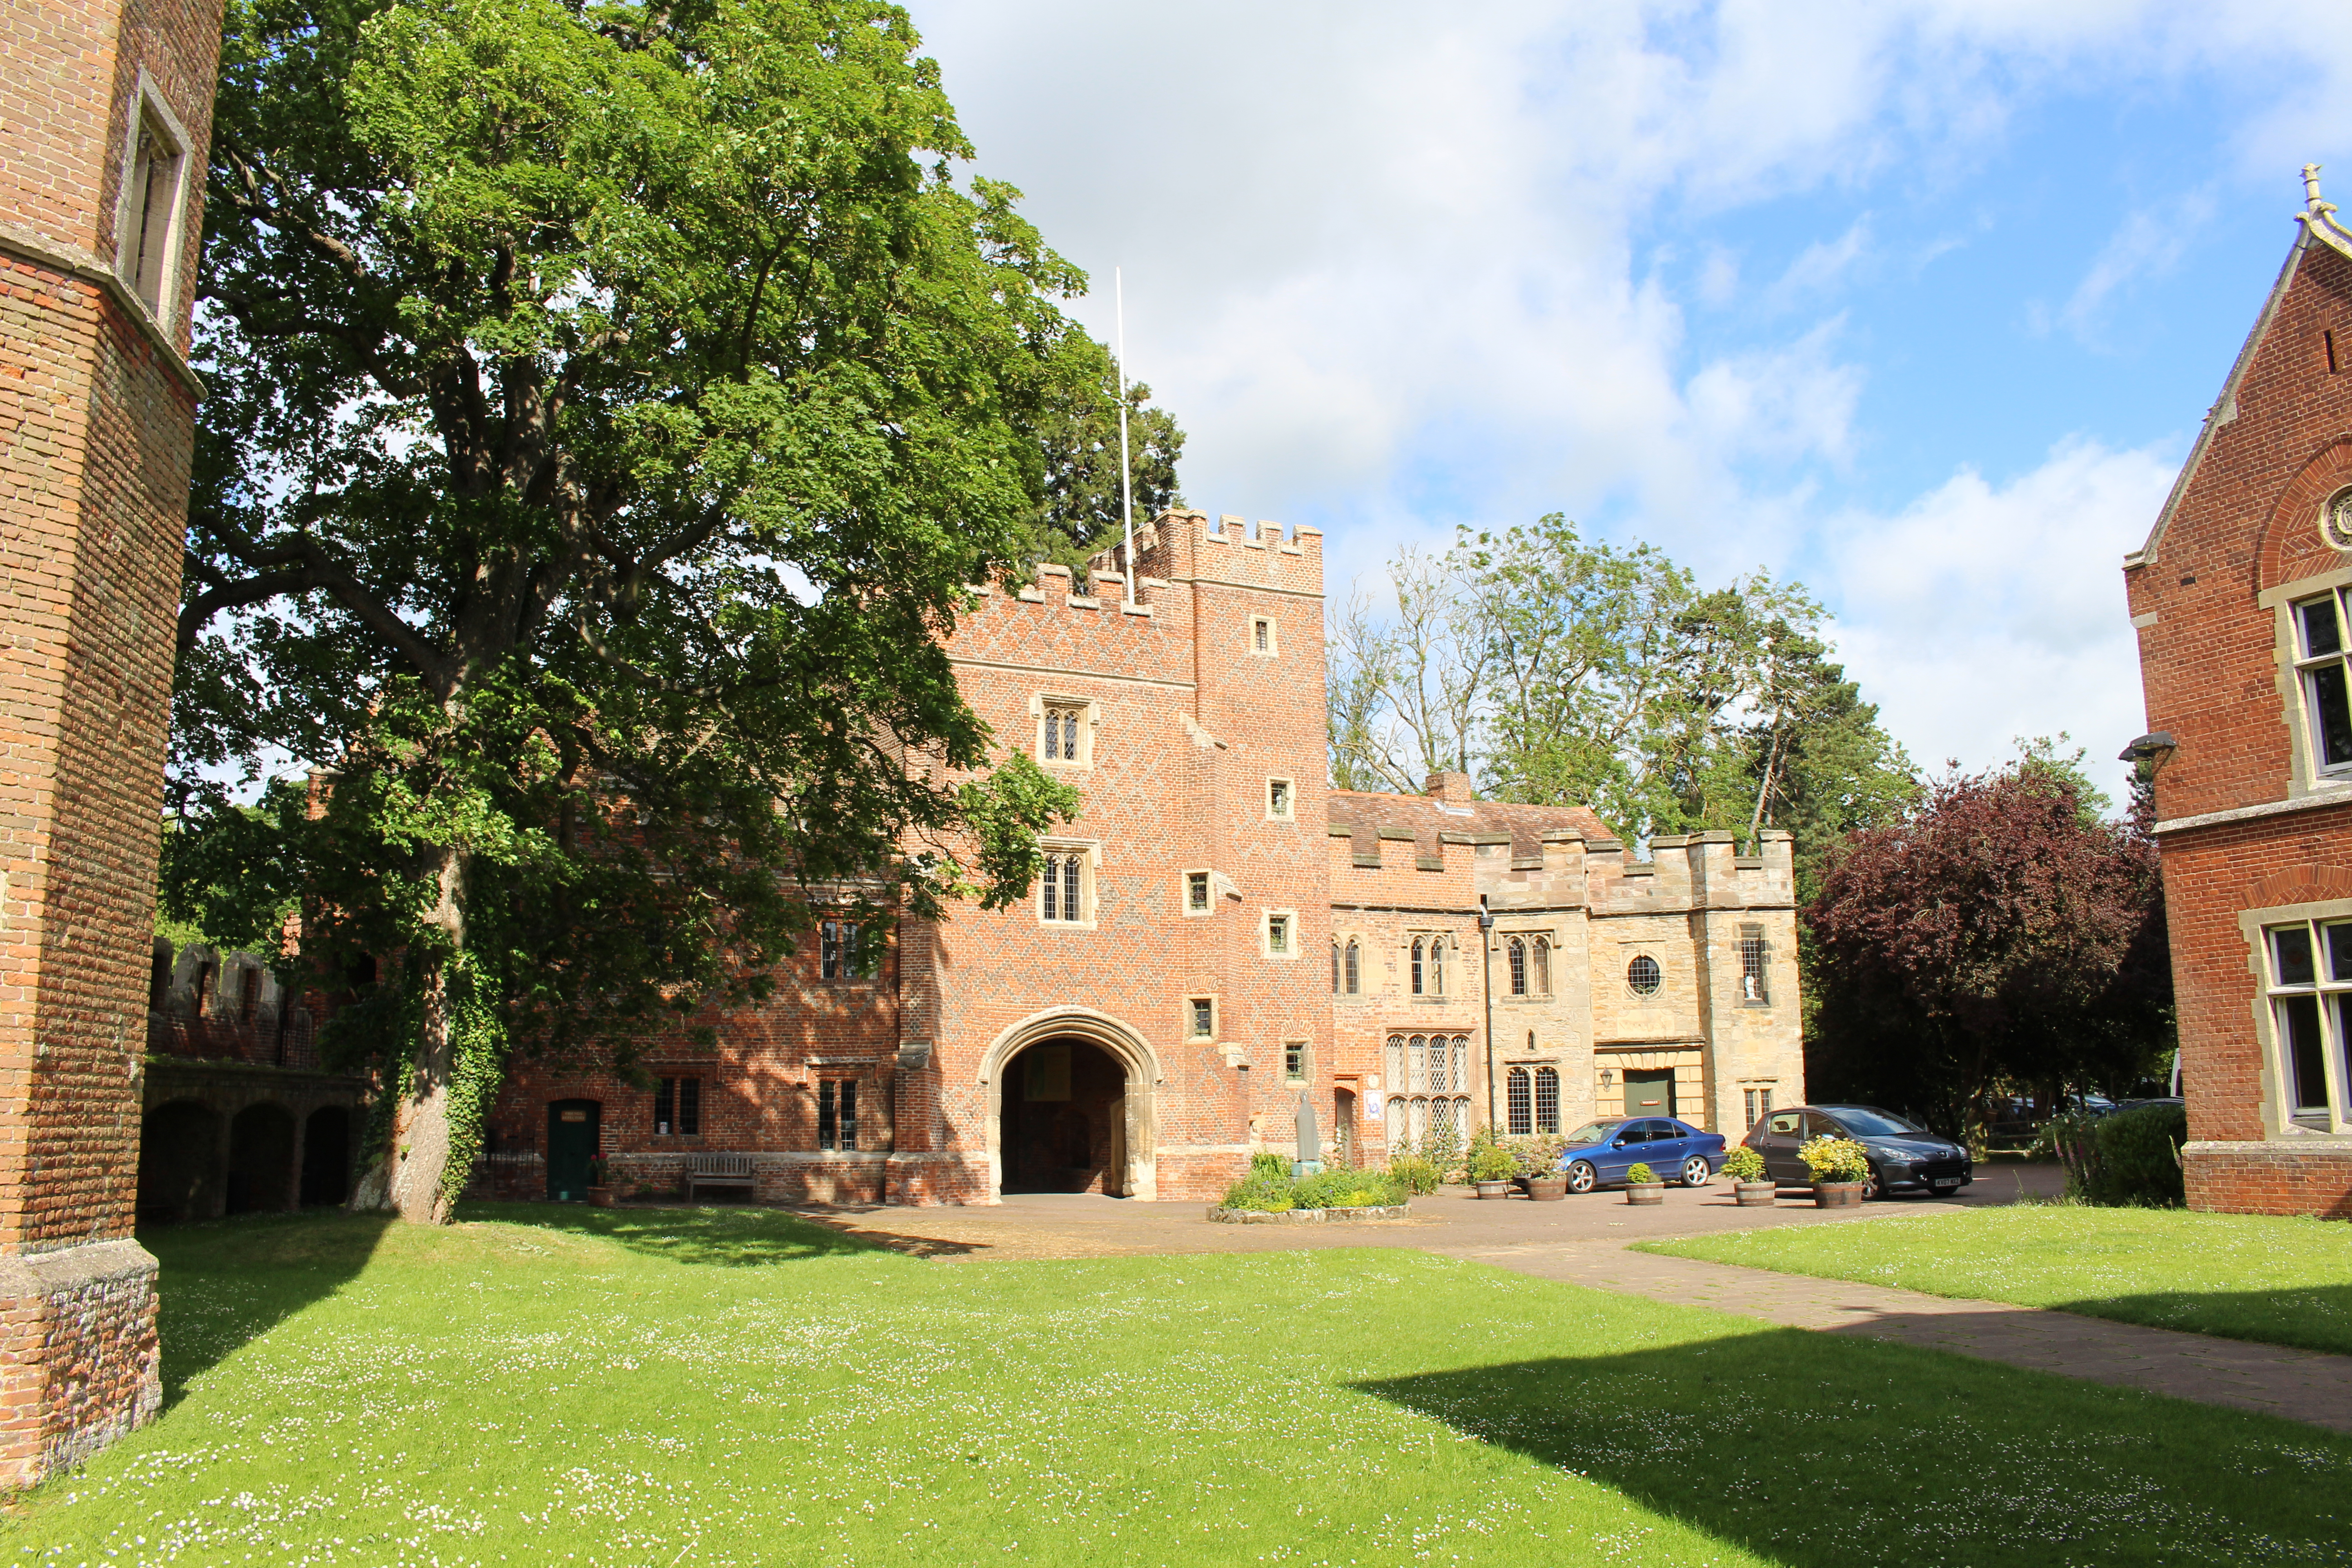 The Gatehouse from the inner courtyard of Buckden Palace